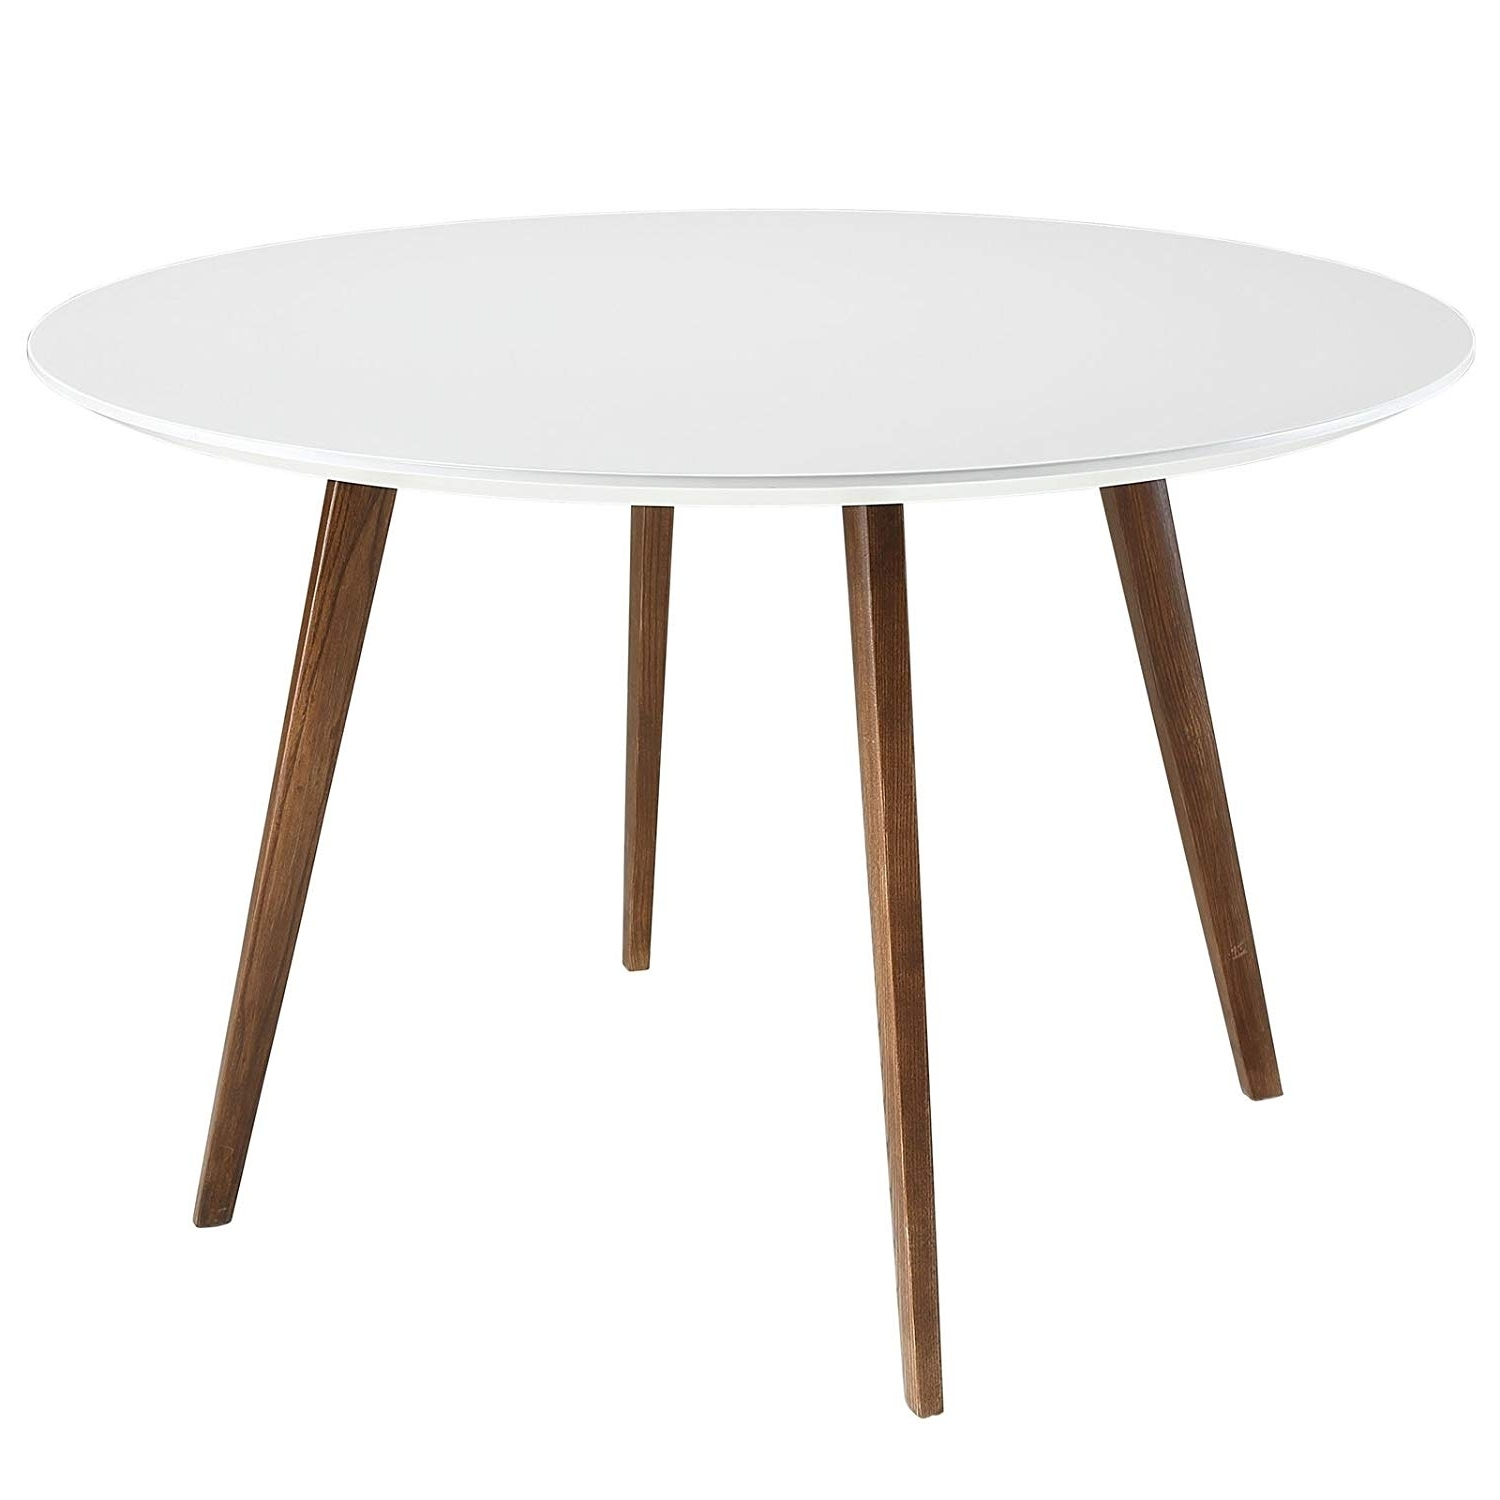 Widely Used White Circular Dining Tables Pertaining To Amazon – Modway Canvas Dining Table In White – Tables (View 24 of 25)